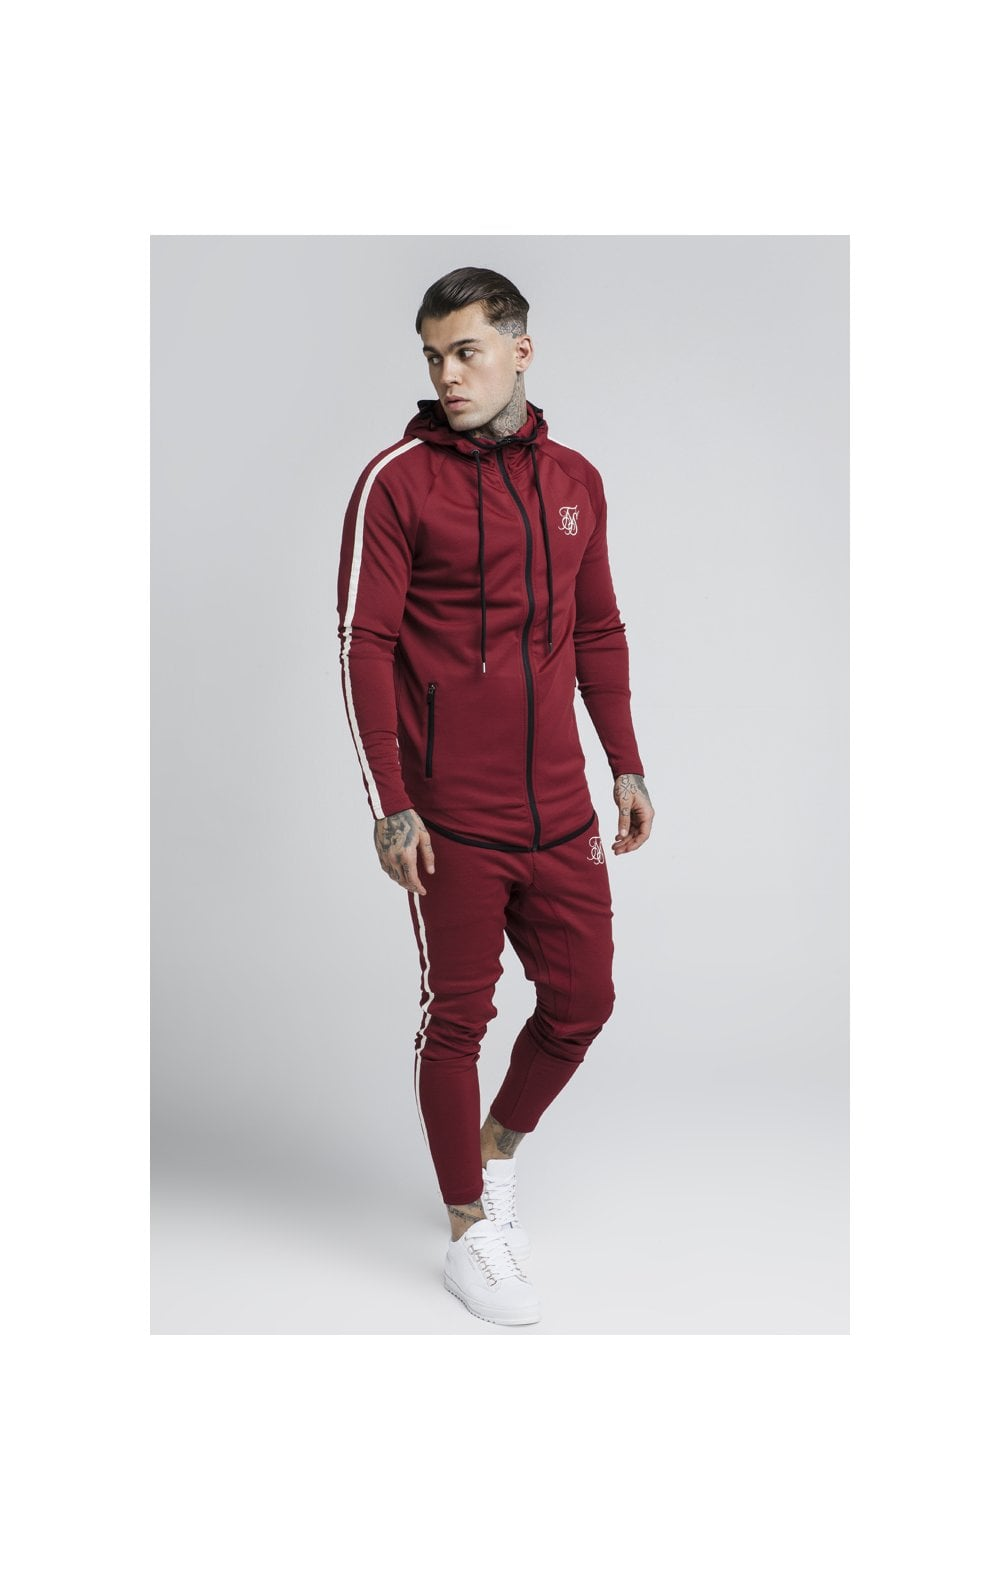 Load image into Gallery viewer, SikSilk Tech Athlete Zip Through Hoodie – Burgundy (6)